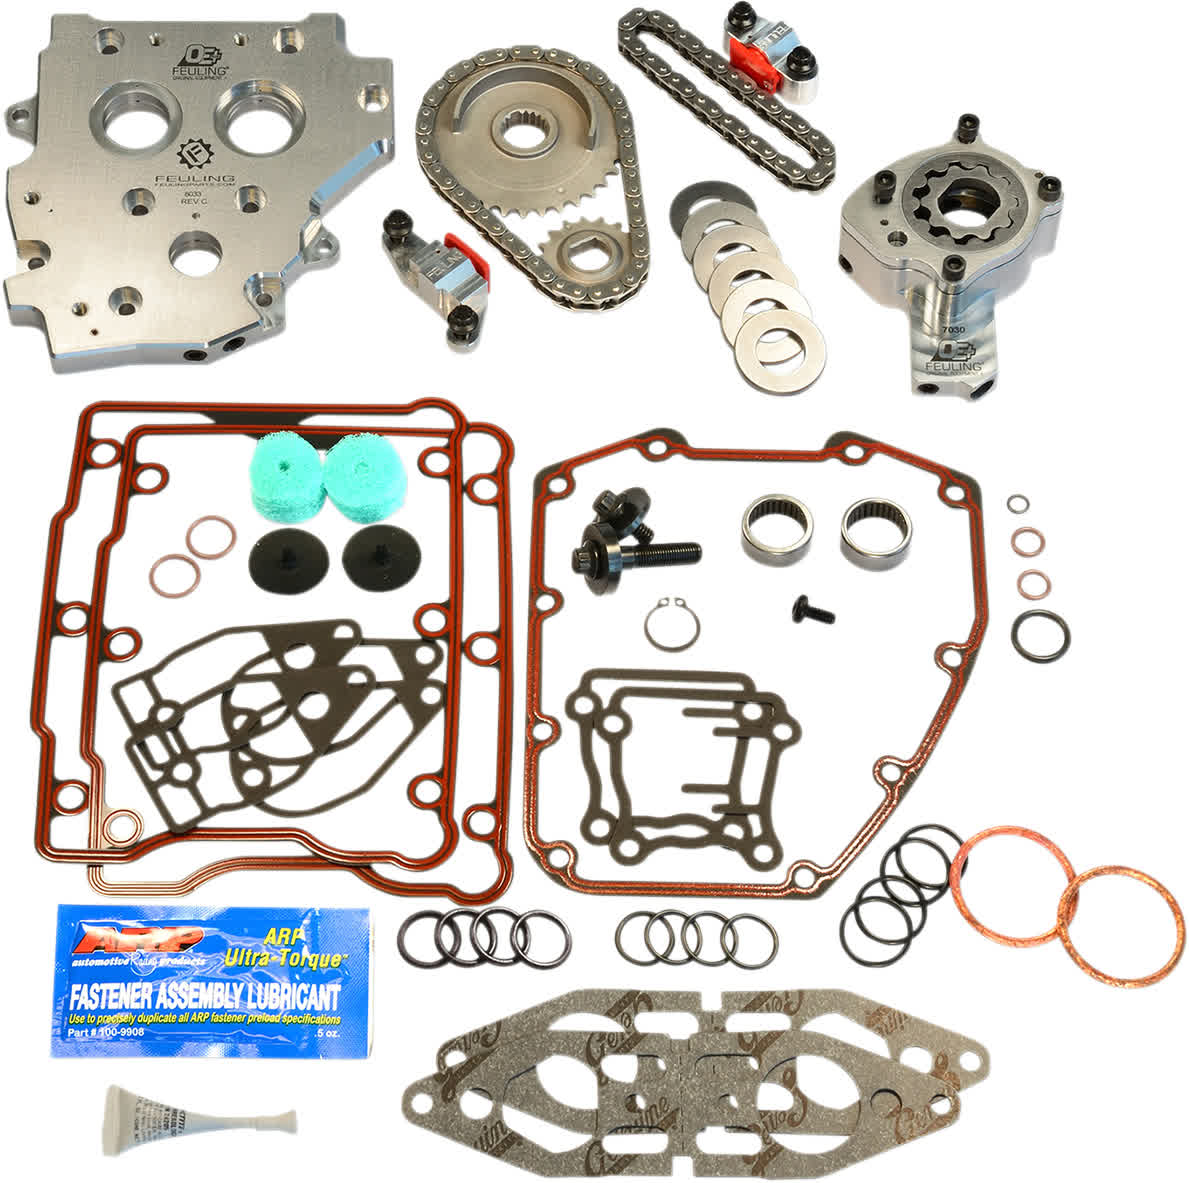 Feuling 7087 OE Hydraulic Cam Chain Tensioner Conversion Kit 99-01